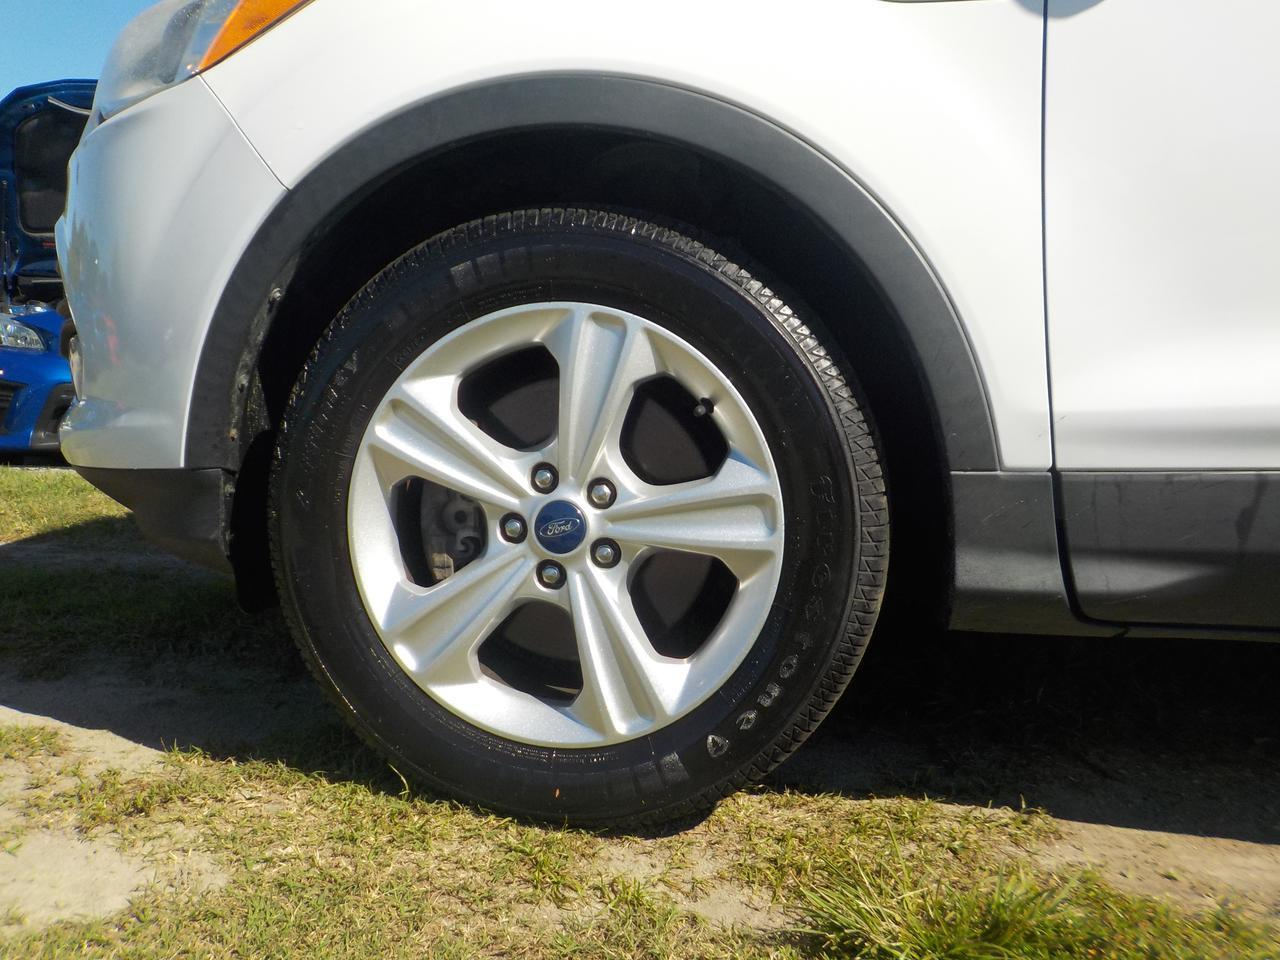 2013 FORD ESCAPE SE, BLUETOOTH, PREMIUM WHEELS, FORD SYNC, KEYLESS ENTRY, LOW MILES! Virginia Beach VA